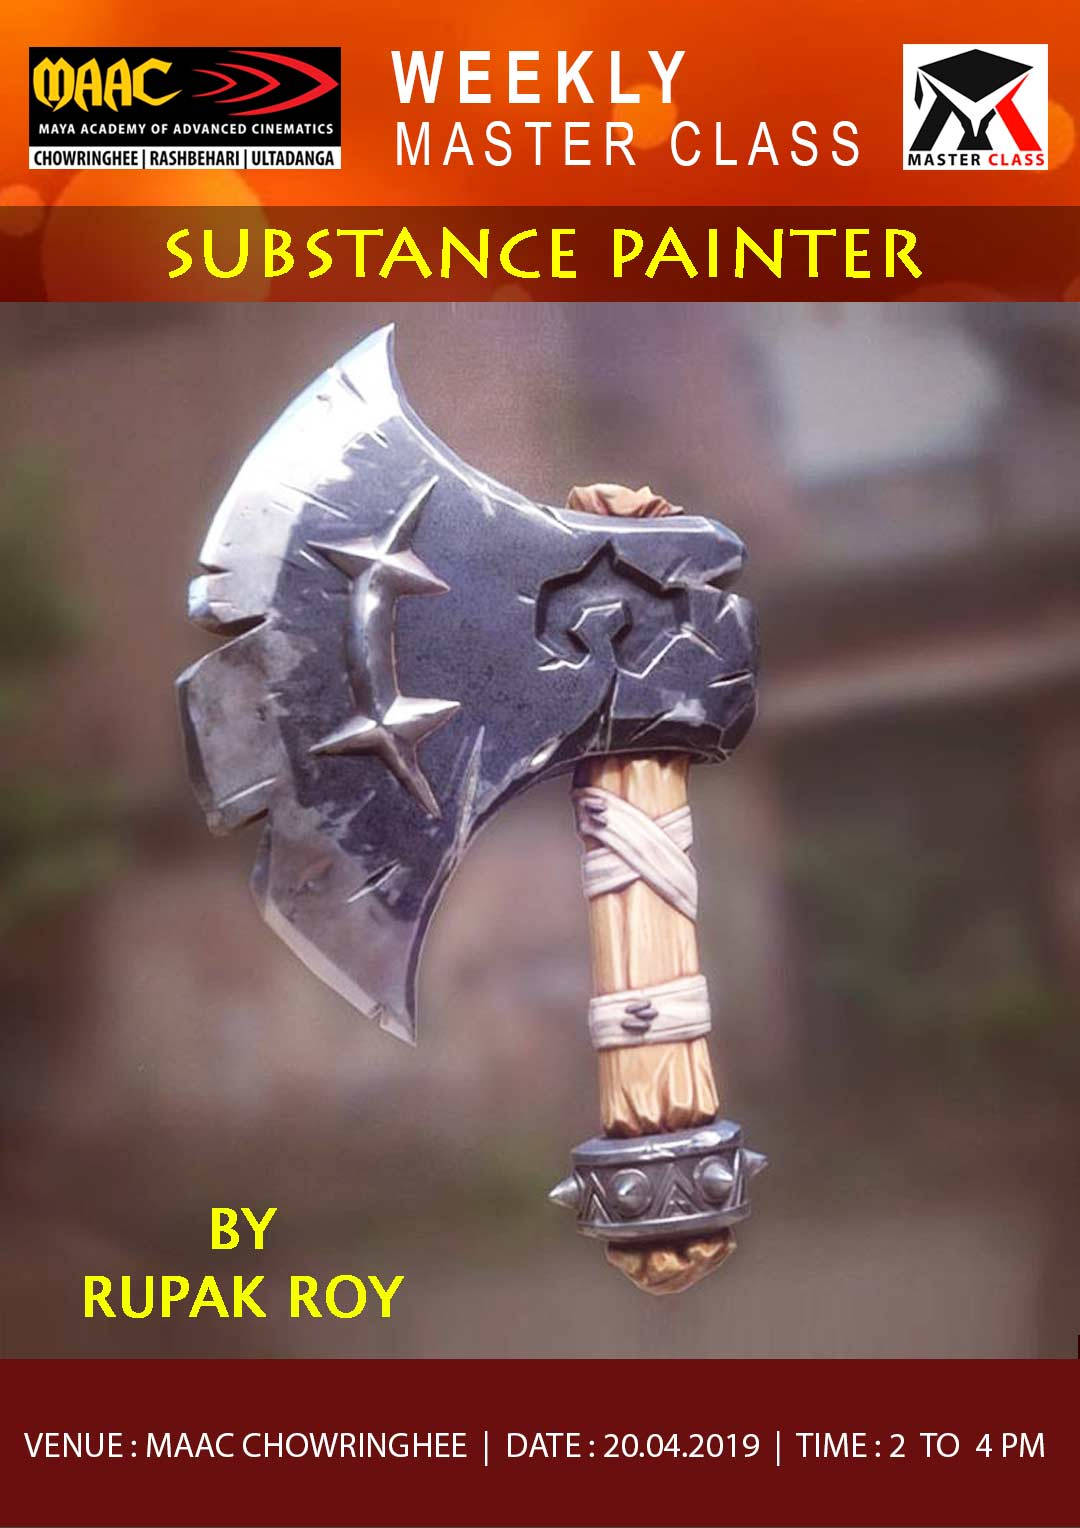 Weekly Master Class on Substance Painter